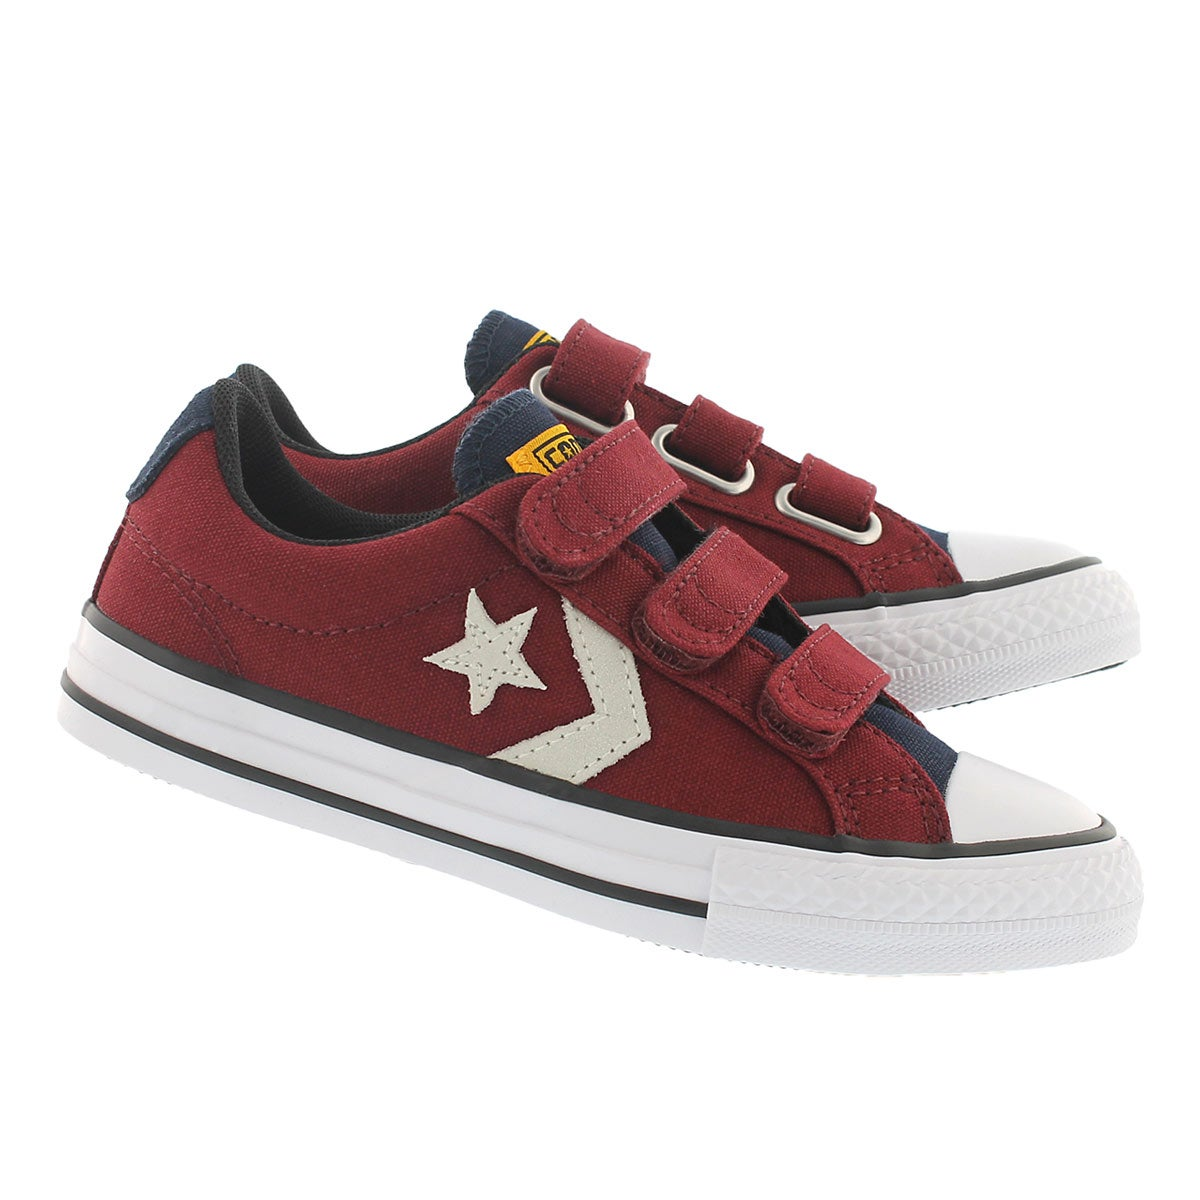 Bys Star Player 3V red/wht sneaker